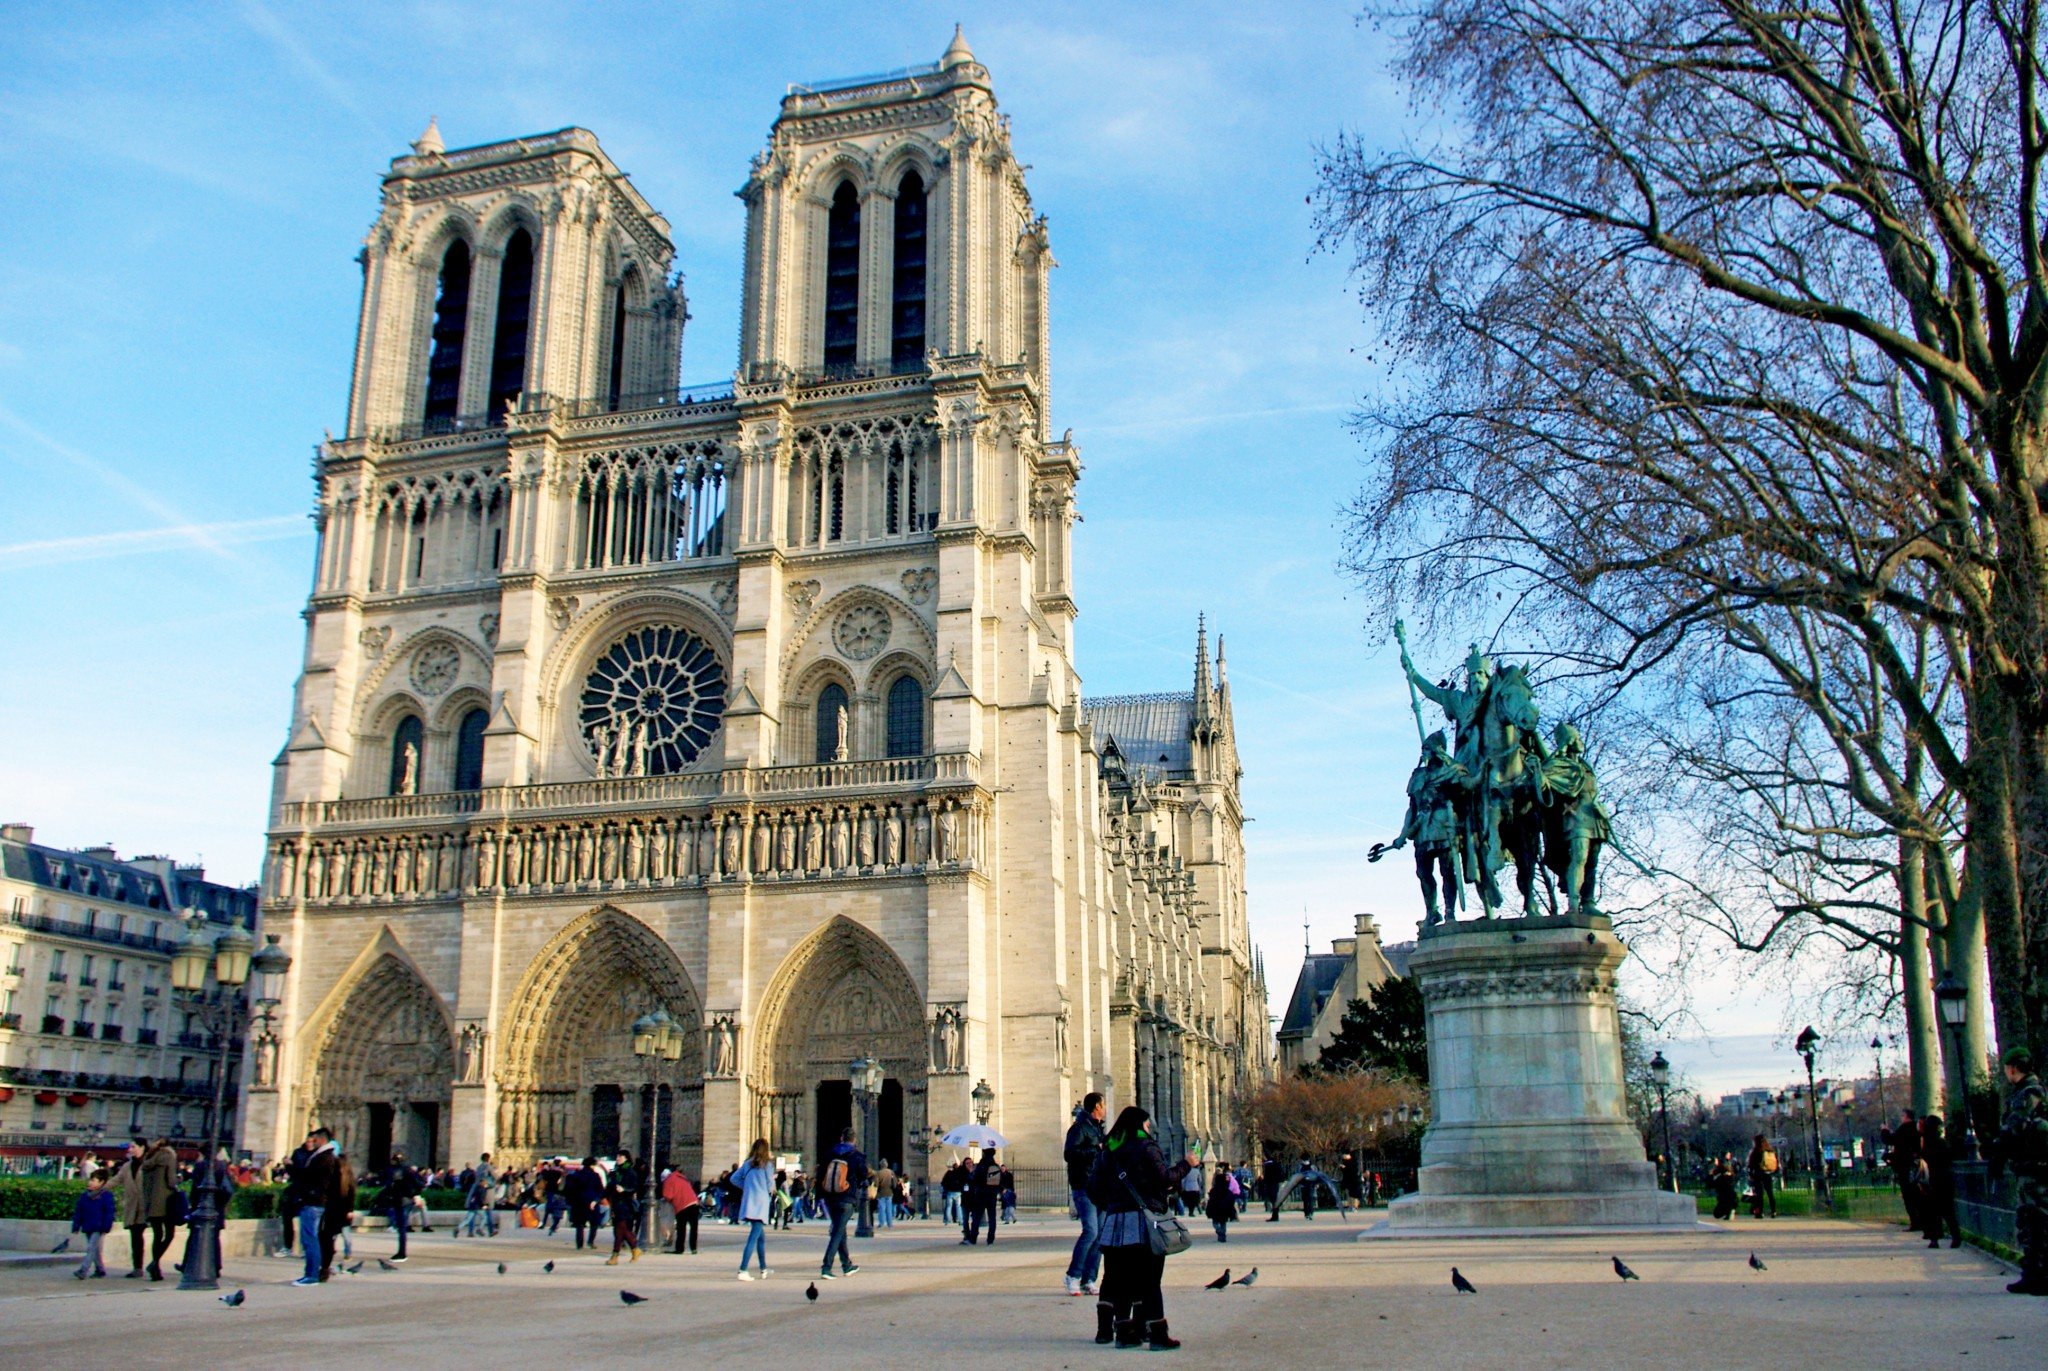 no christmas tree in front of notredame cathedral this